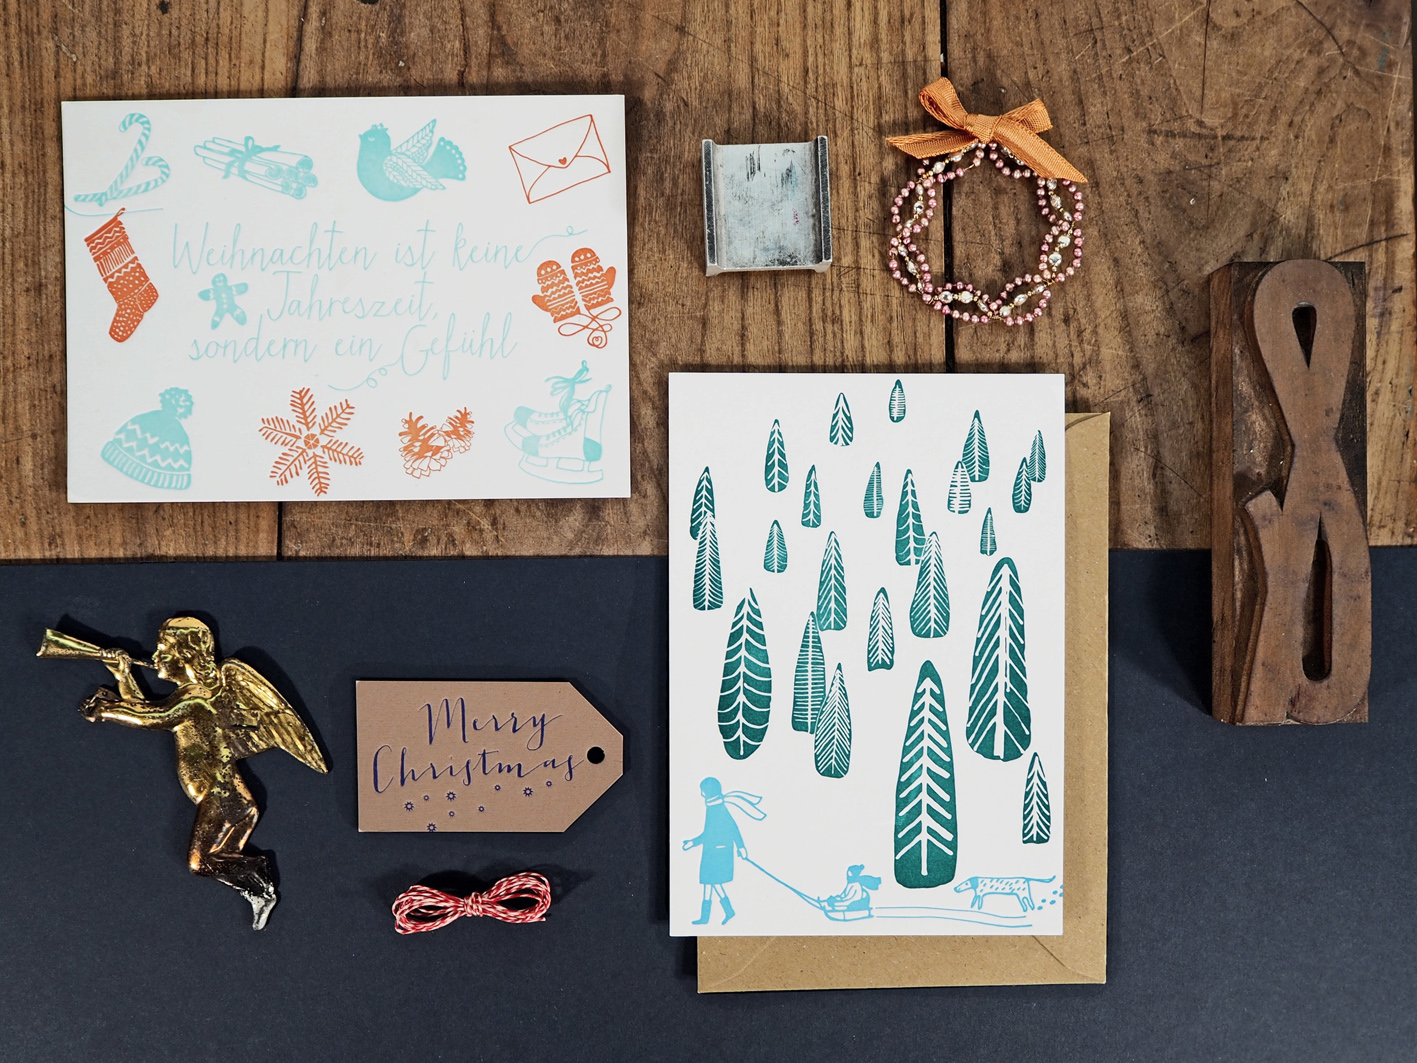 CarissimoLetterpress_xmas2015_Weihnachten&Snowy Forest_Photocredits Carissimo Letterpress_web